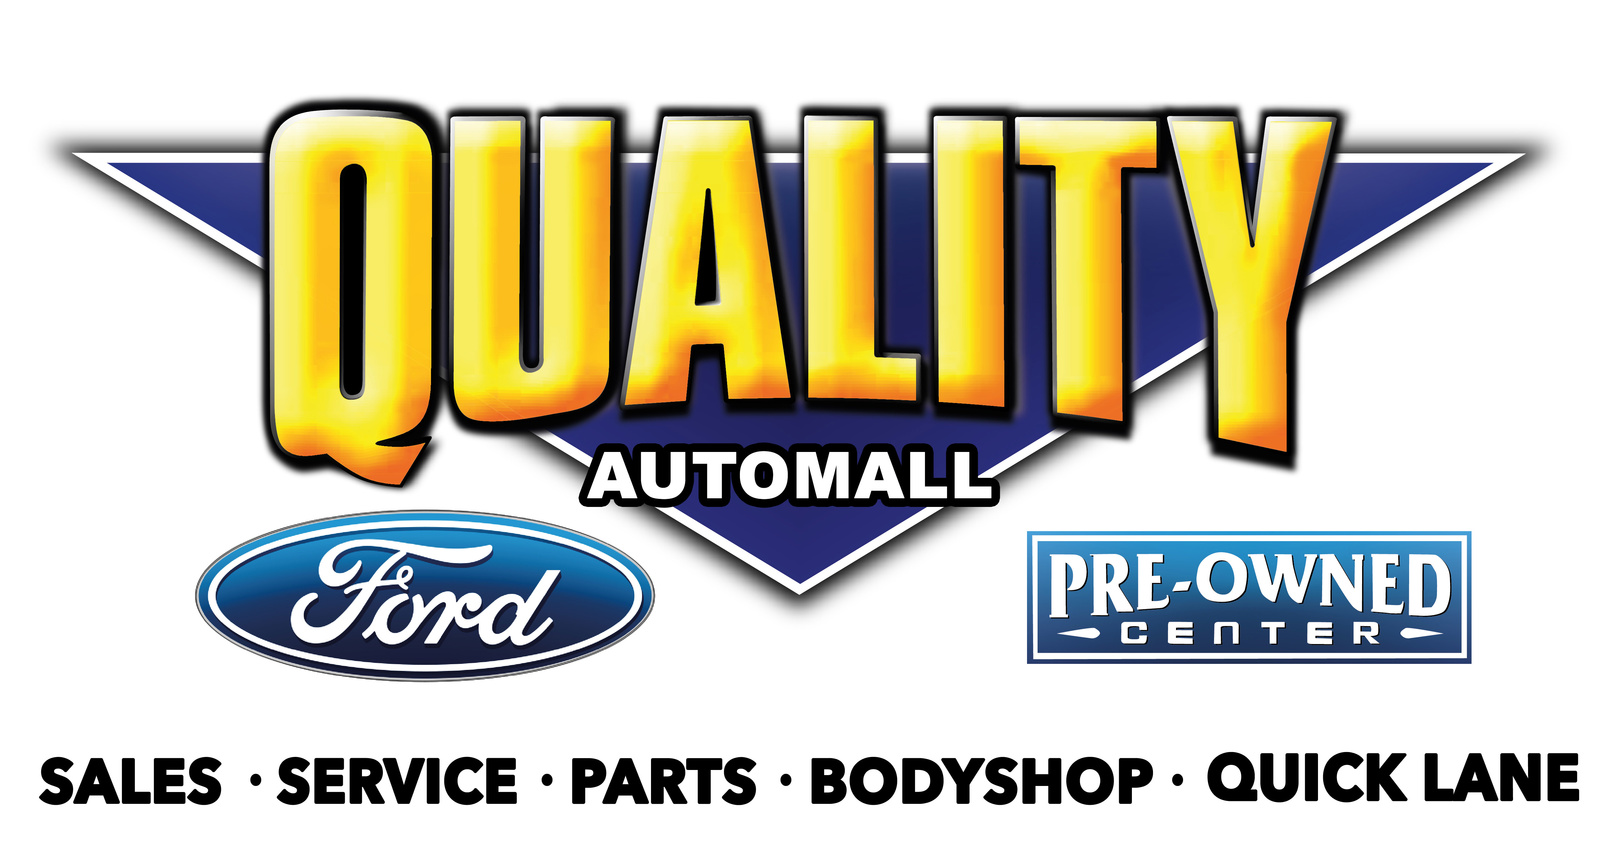 Honda Dealers Nj >> Quality Auto Mall (Ford) - Rutherford, NJ: Read Consumer ...